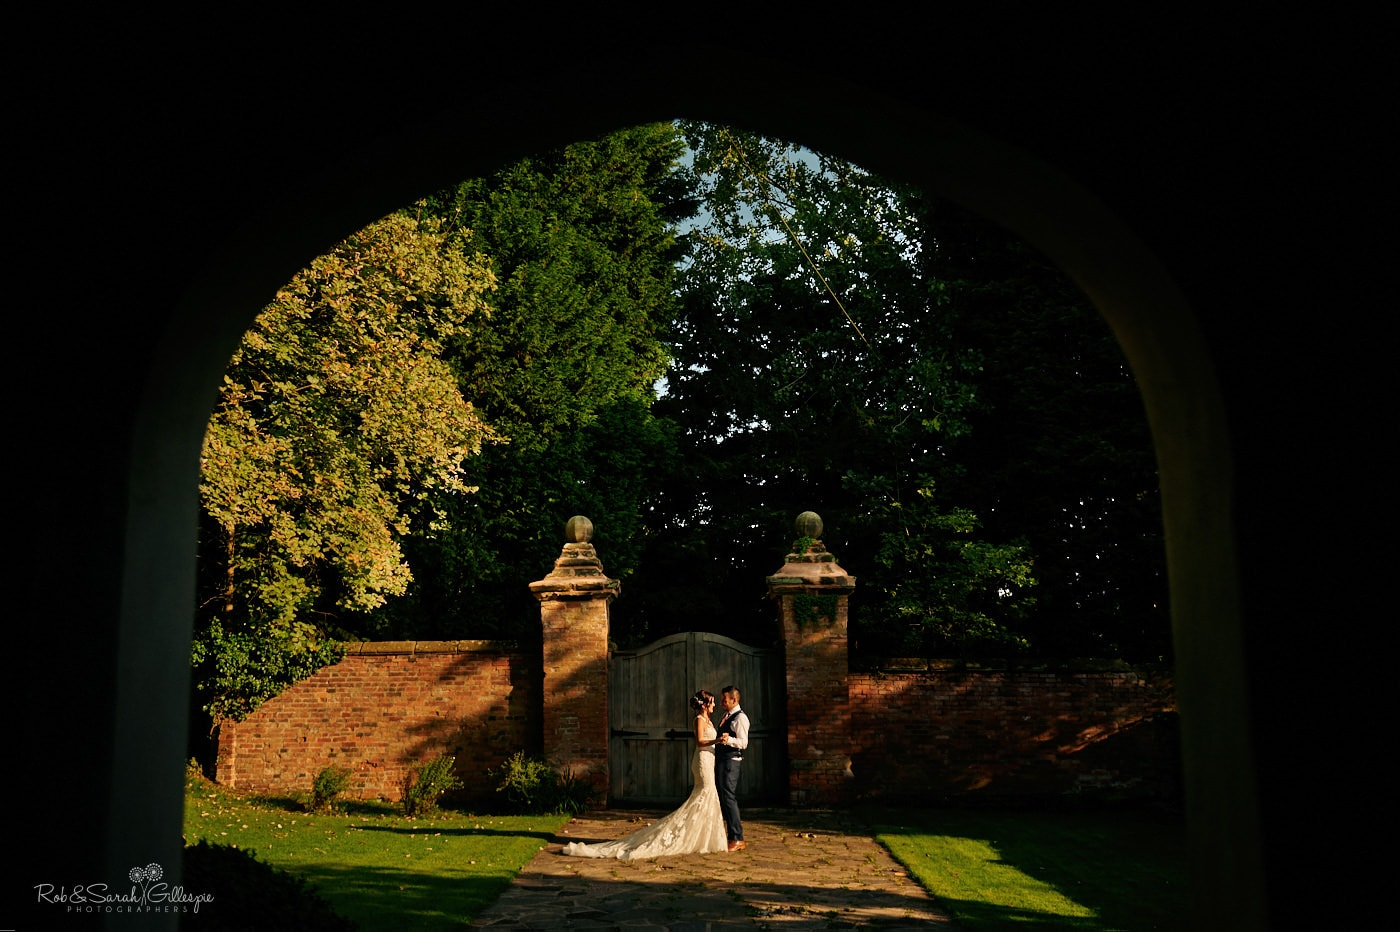 Bride and groom in bright sunlight during Gorcott Hall wedding